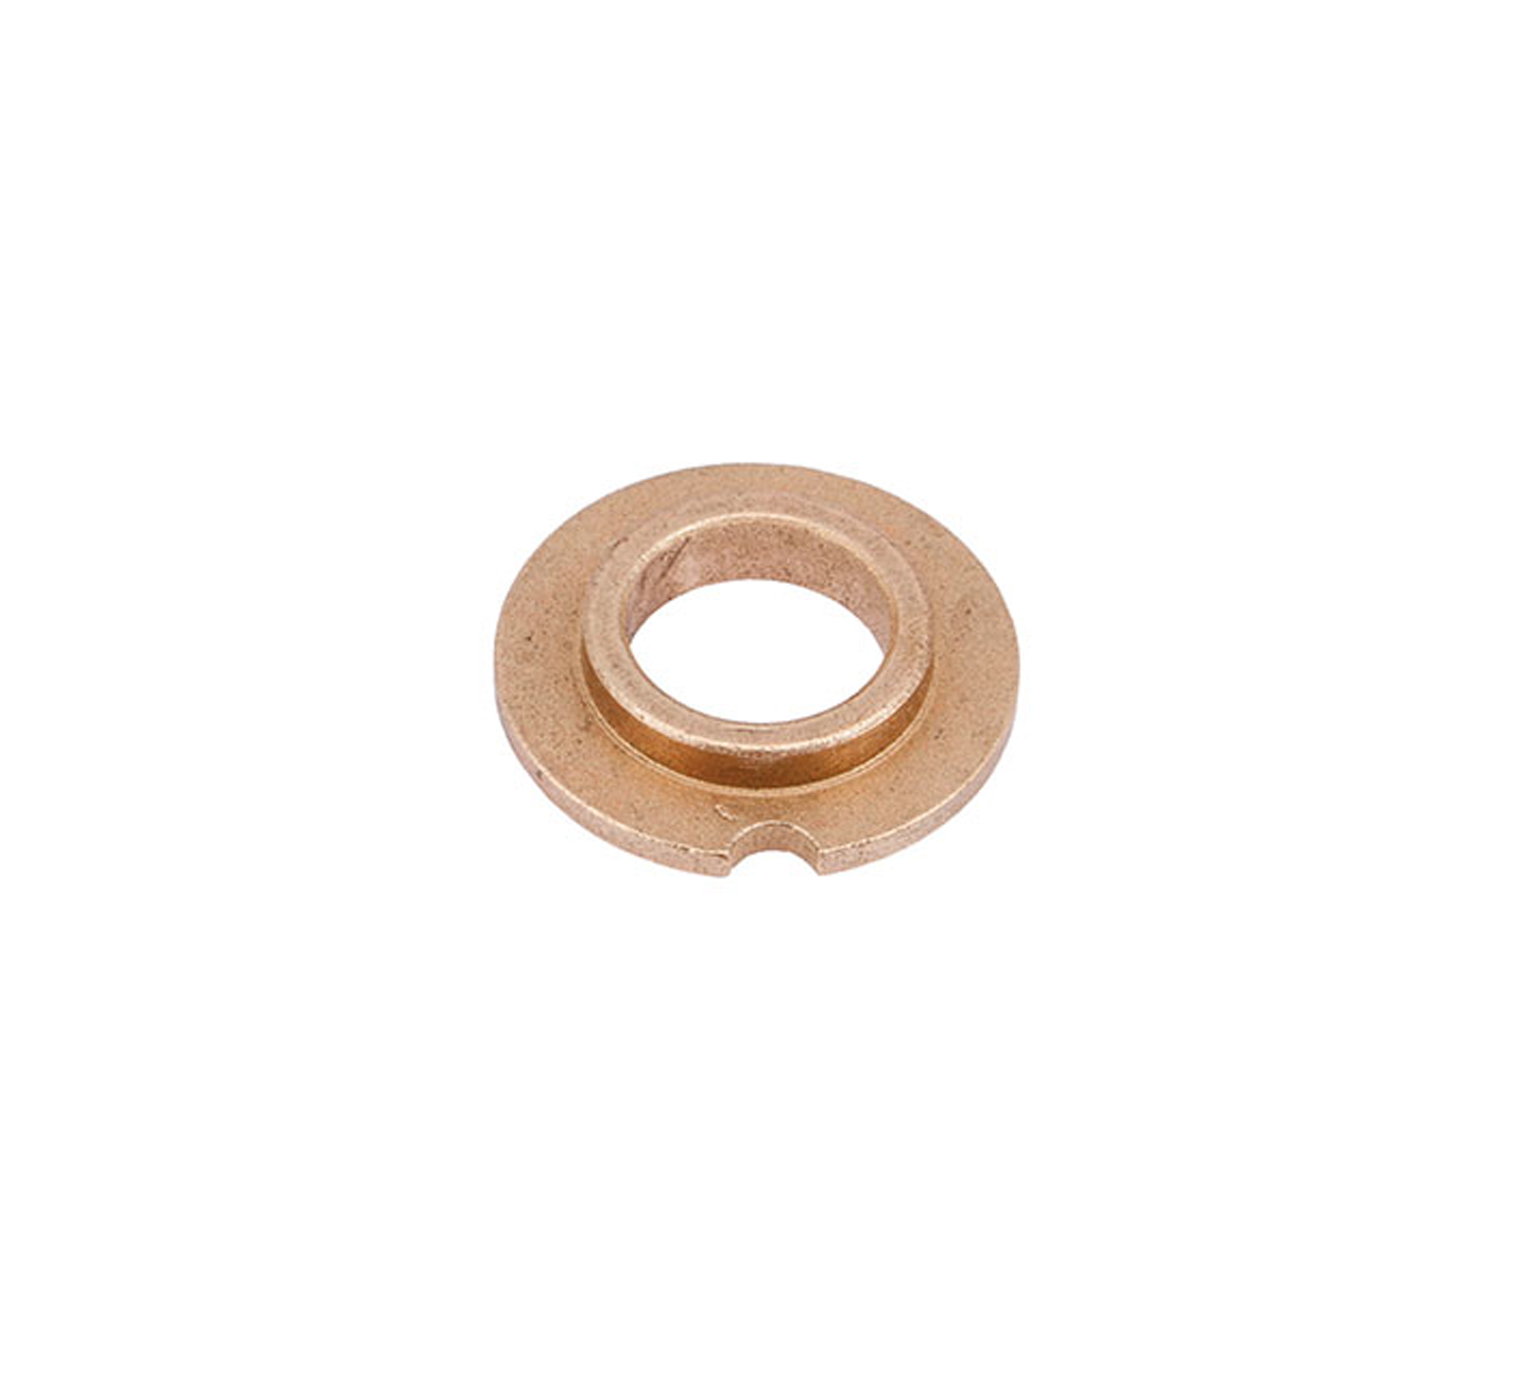 222868 Steel Flange Bushing - 1.5 OD x 0.75 ID x 0.28 in alt 1